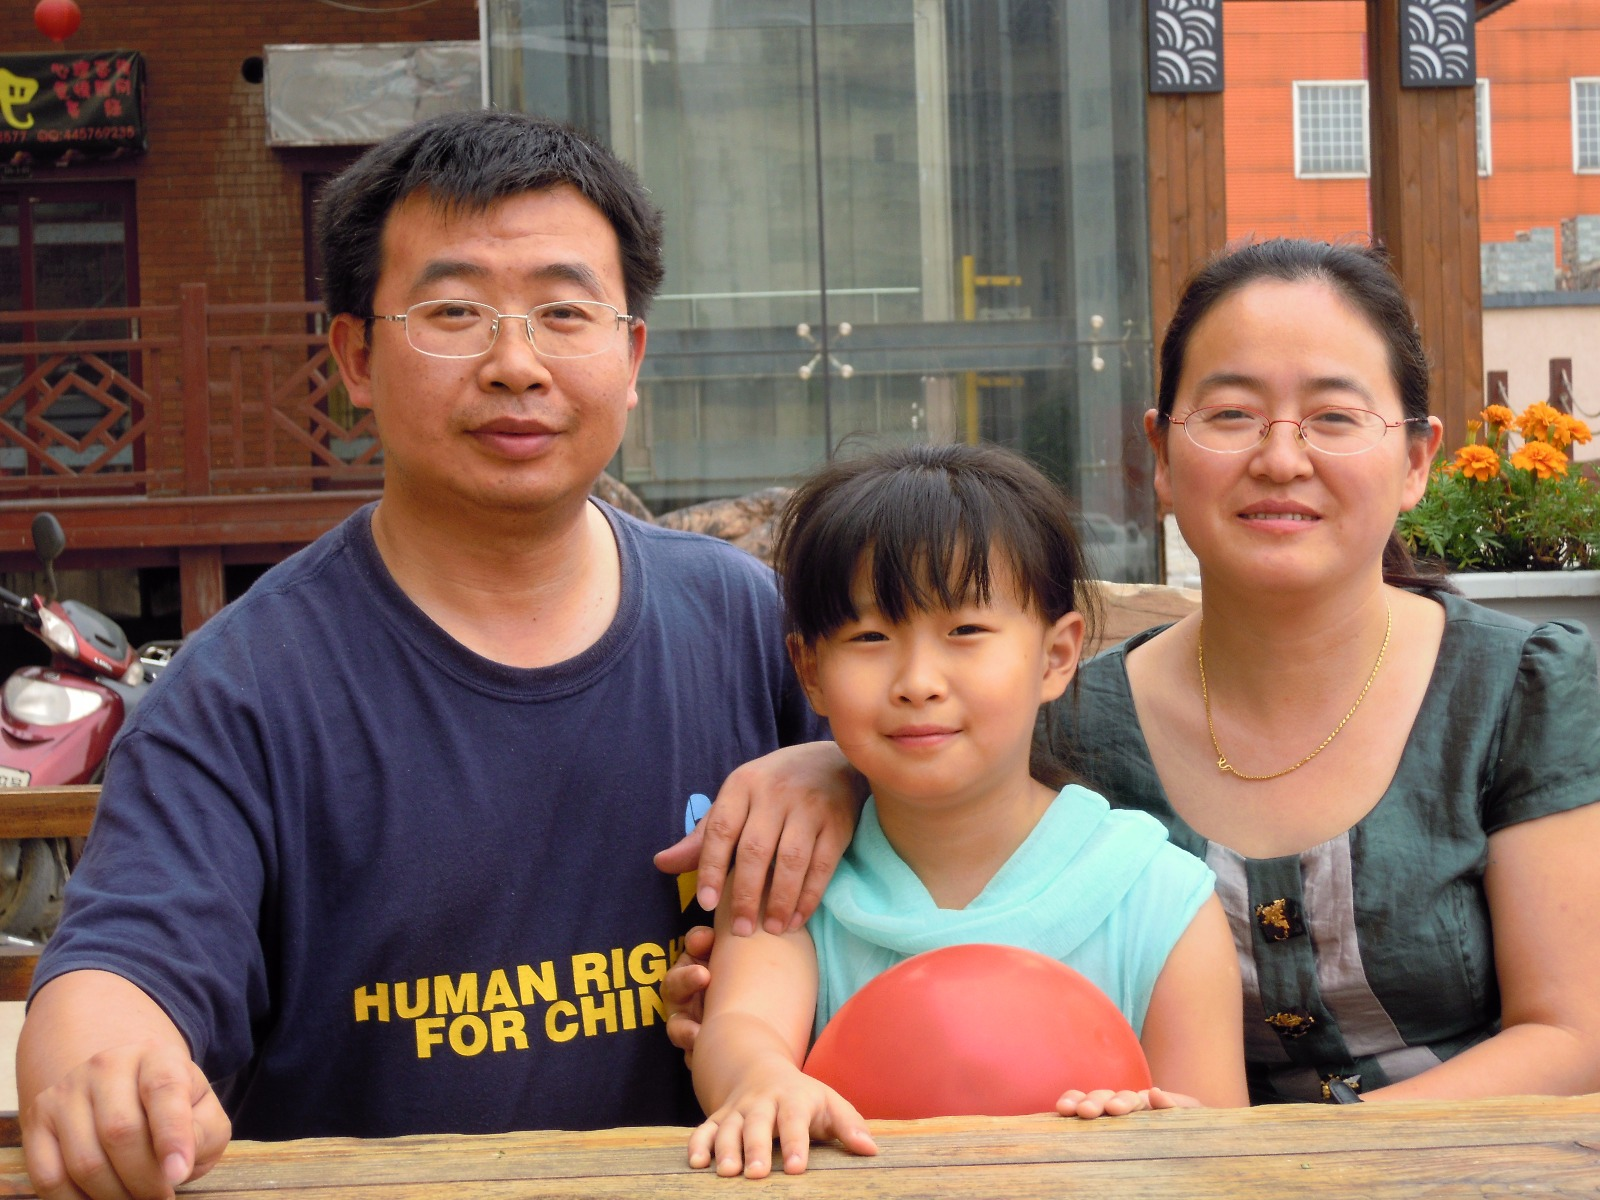 China: Human rights lawyer suffering deplorable prison conditions